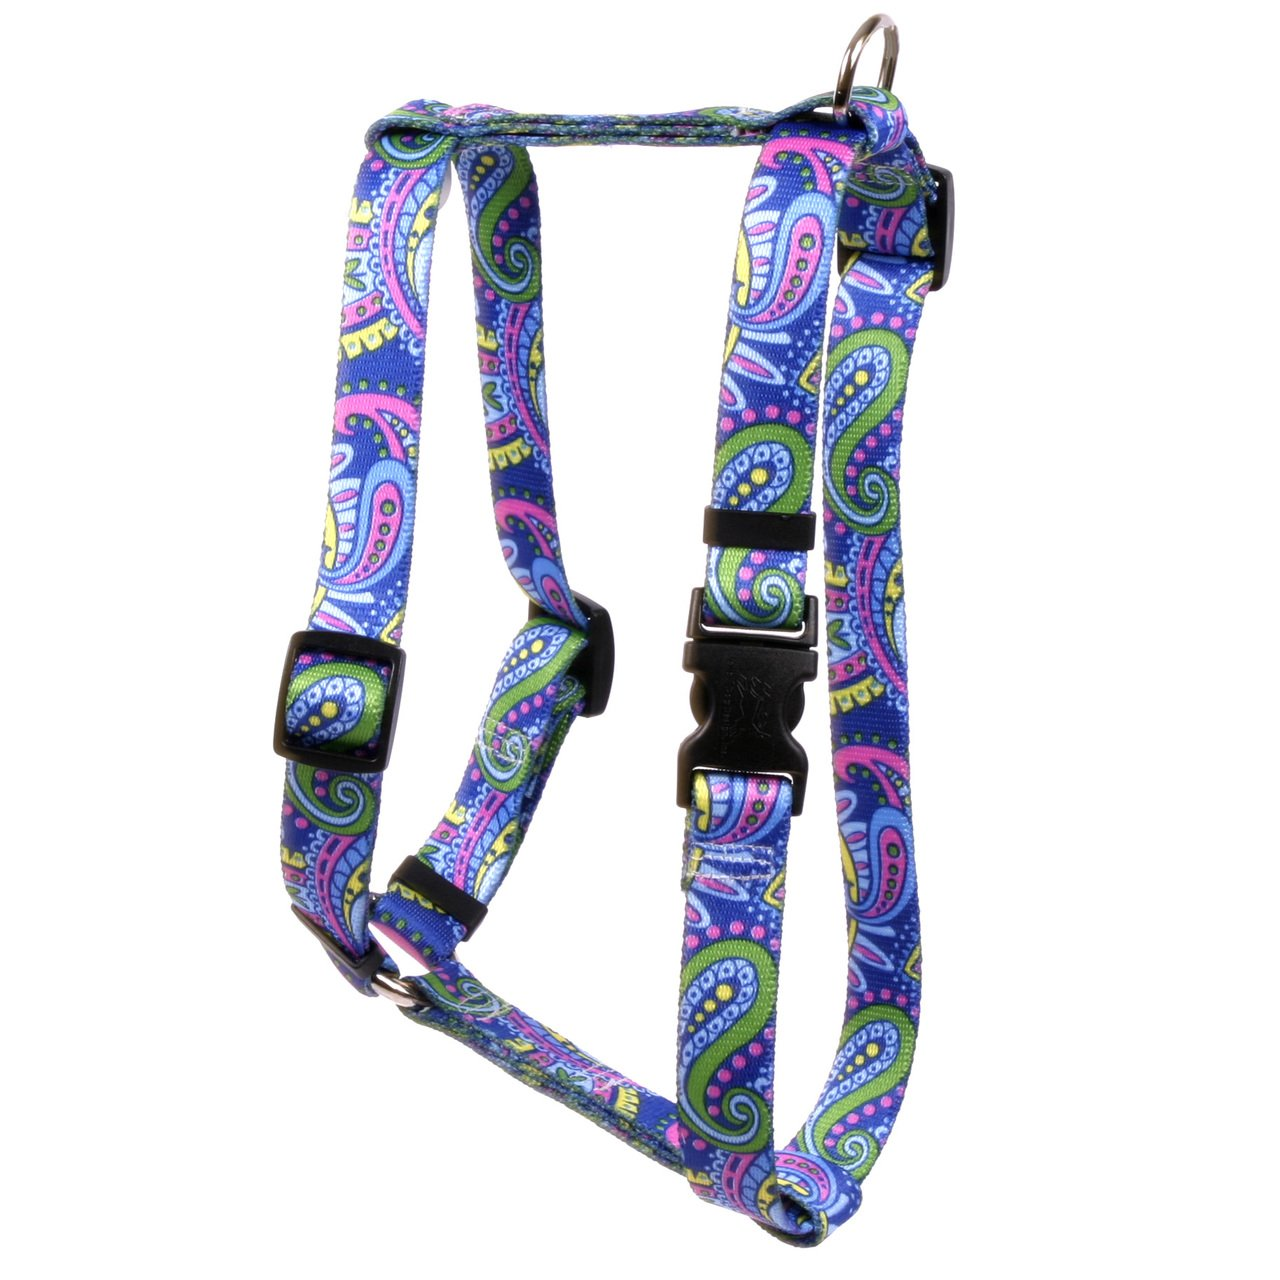 Yellow Dog Design Paisley Power Roman Style H Dog Harness, X-Small-3/8 Wide and fits Chest of 8 to 14''